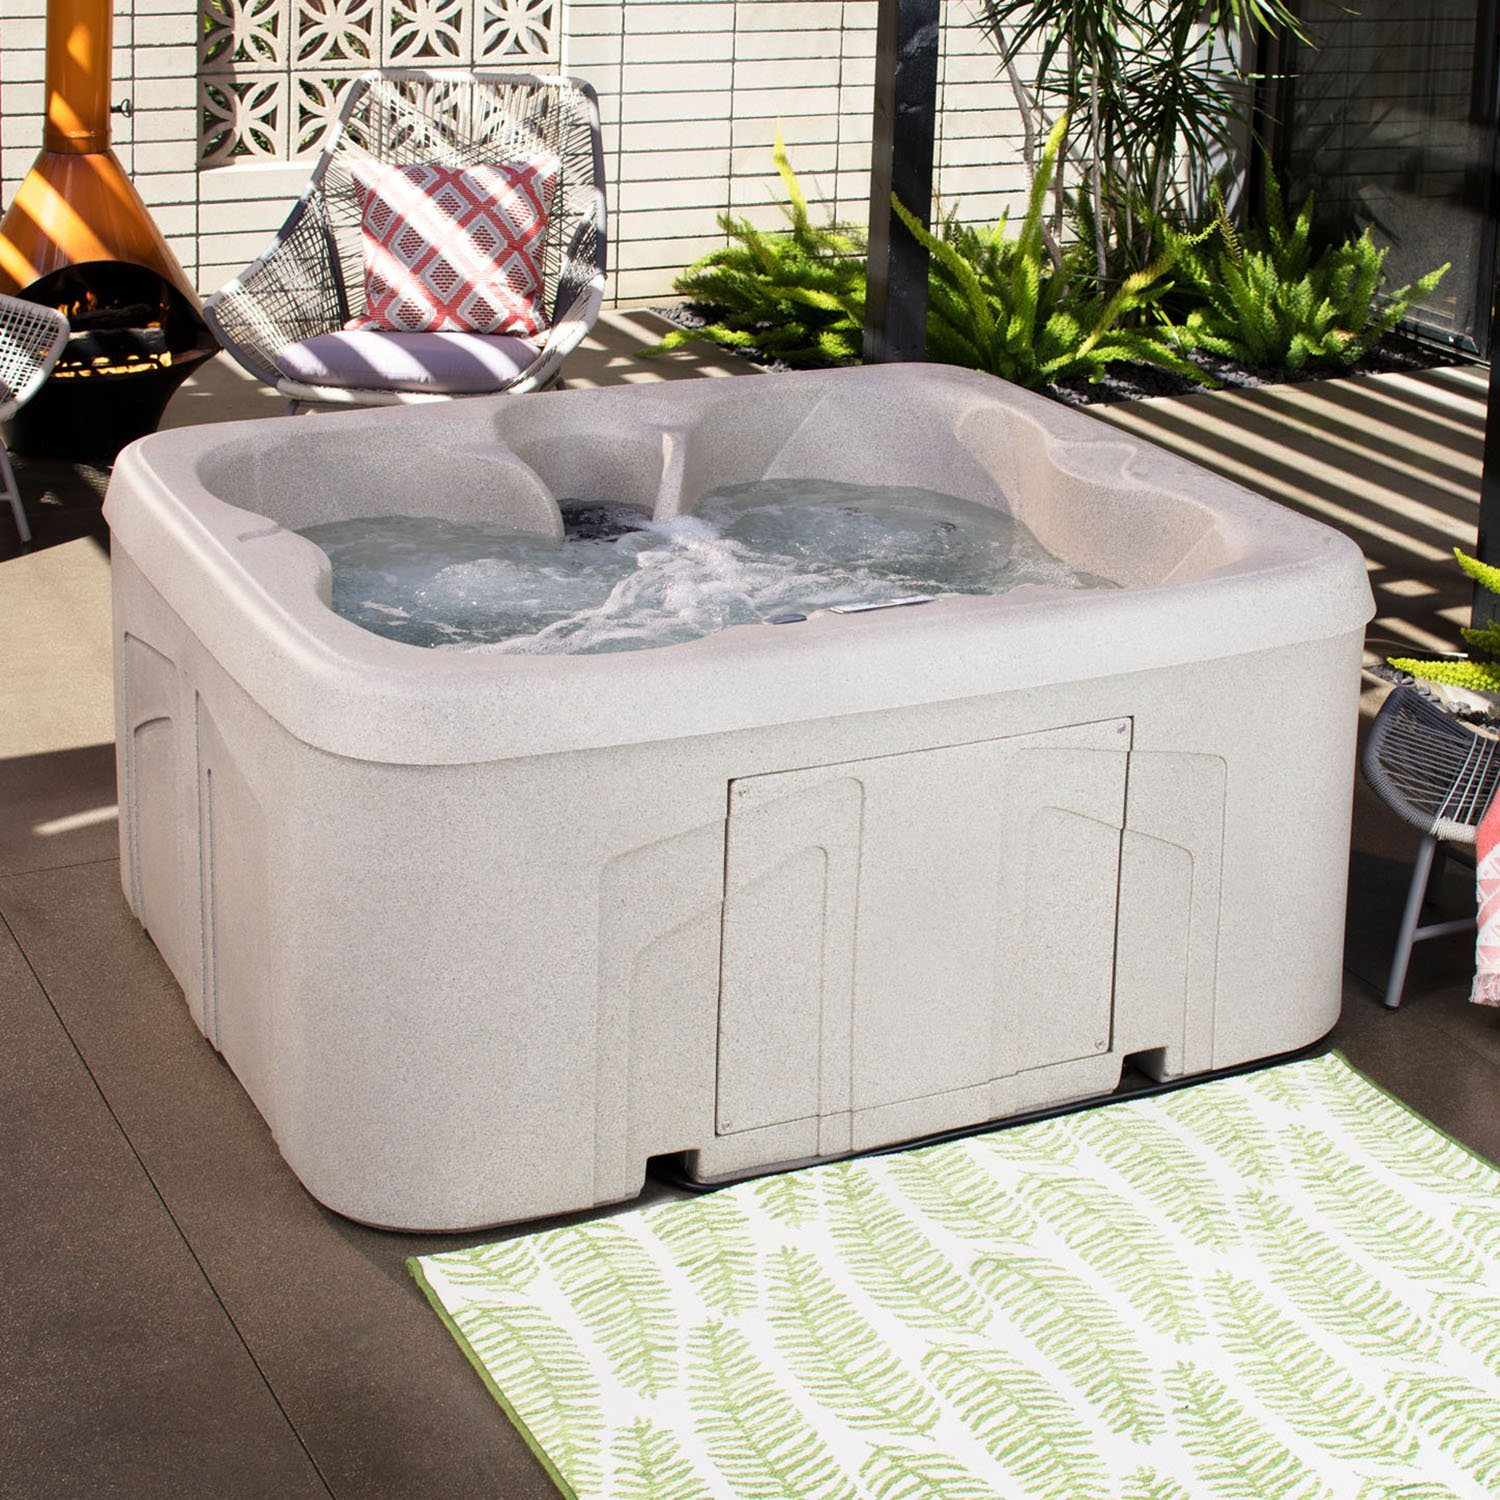 set spa bubble garden portable tub purespa massage patio lawn tubs sale amazon hot dp ca for intex